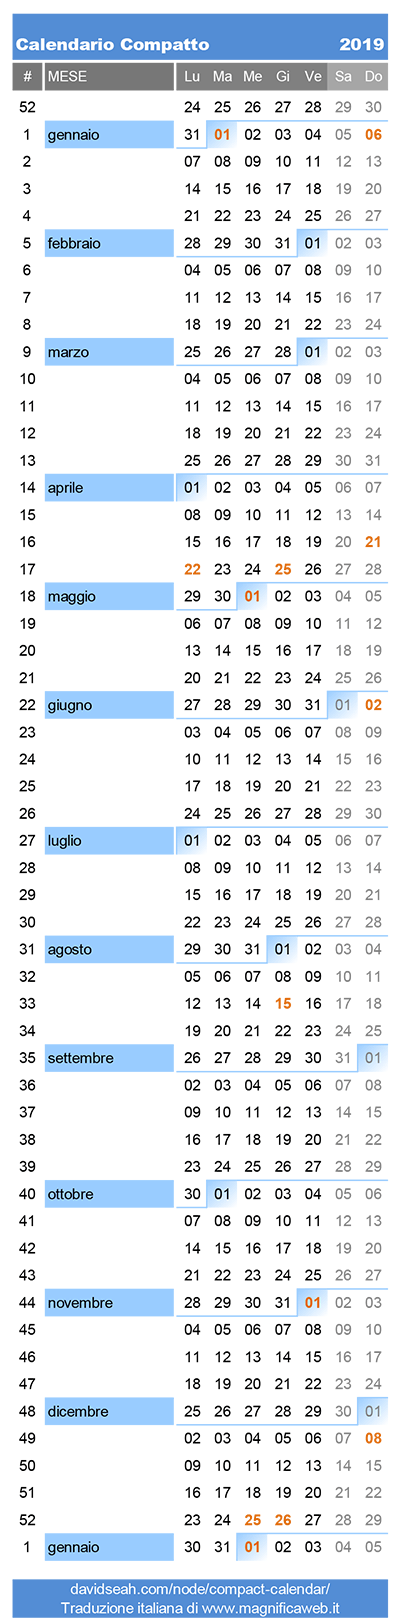 Calendario Annuale 2020 Italiano.Calendario 2019 Compatto Da Stampare In Excel E Pdf Gratis